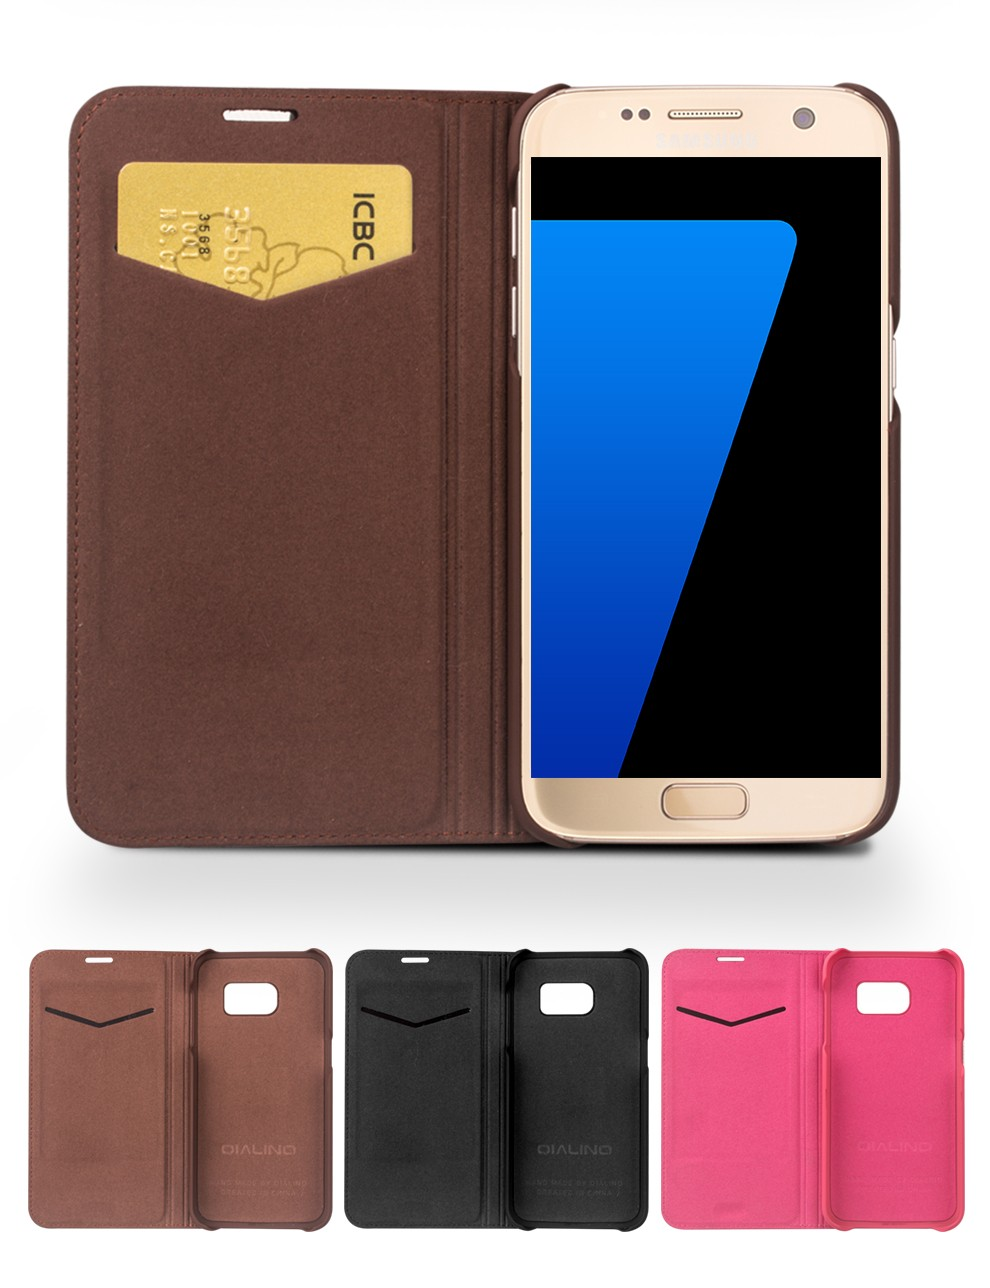 QIALINO Cell Phone Case Ultra Thin Handmade Magnetic Flip Leather Cover Case W/ Card Holder For Samsung Galaxy S7 Phone